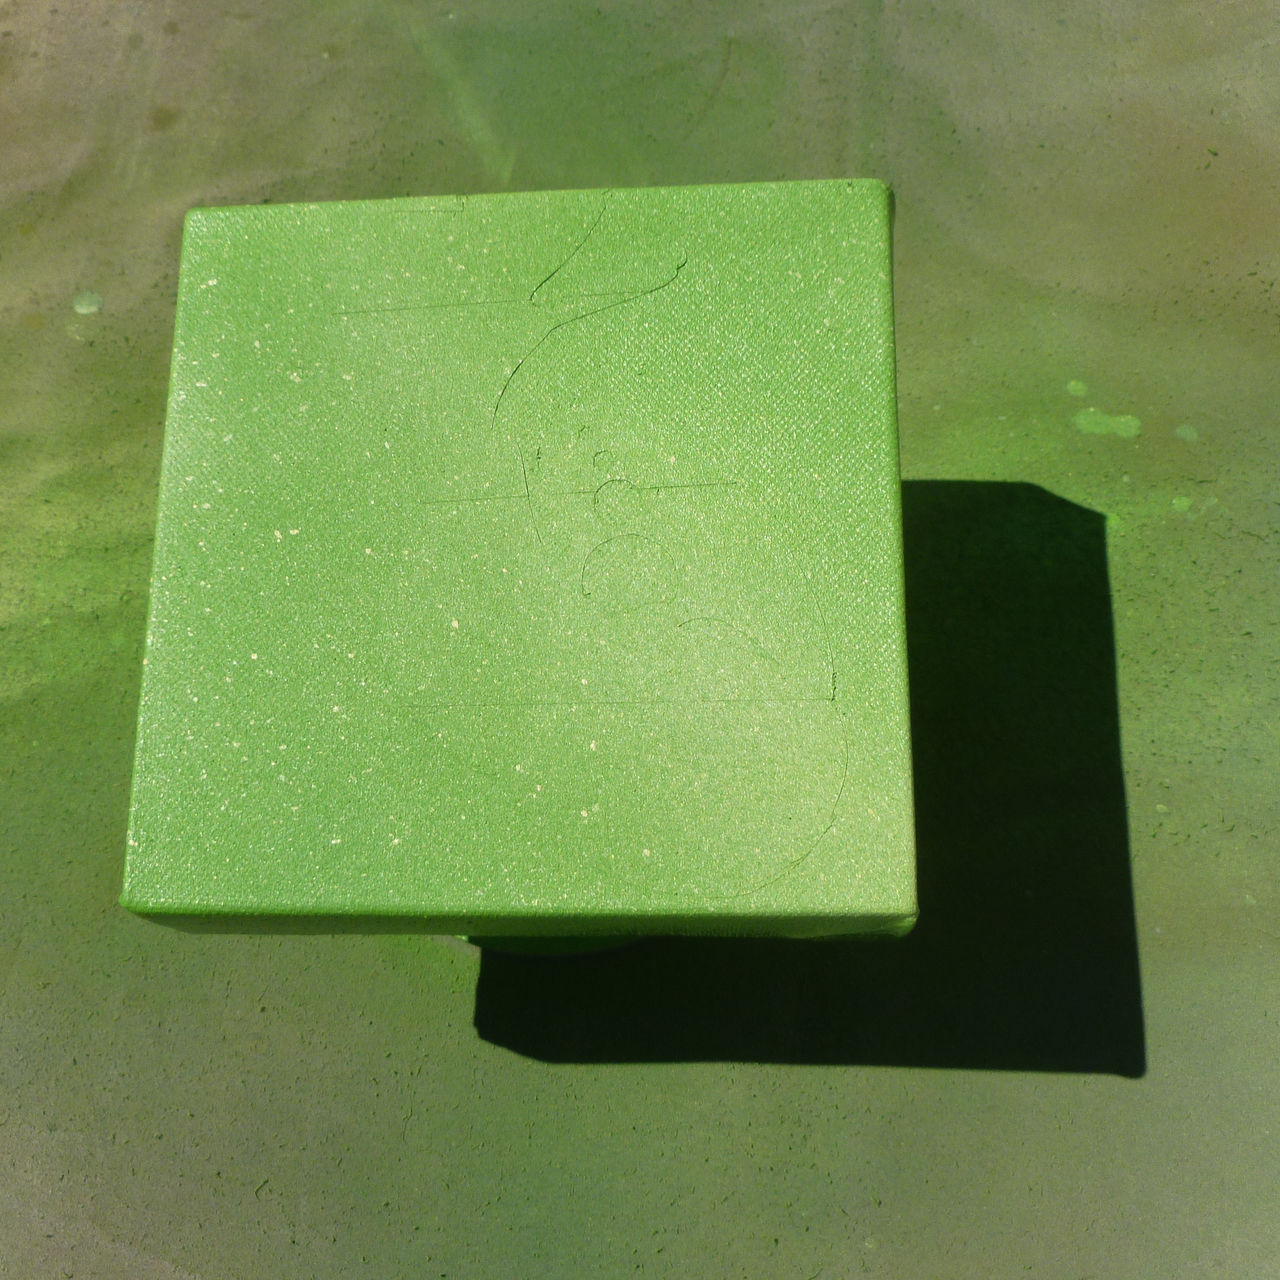 Painted stretched canvas close-up - green - from above Abstract Abstract Backgrounds Backgrounds Canvas Cast Shadows Close-up Day Flat Green Color Looking Down No People Offset Outdoors Paint Shadow Shadow And Light Shift Square Squares Texture View From Above